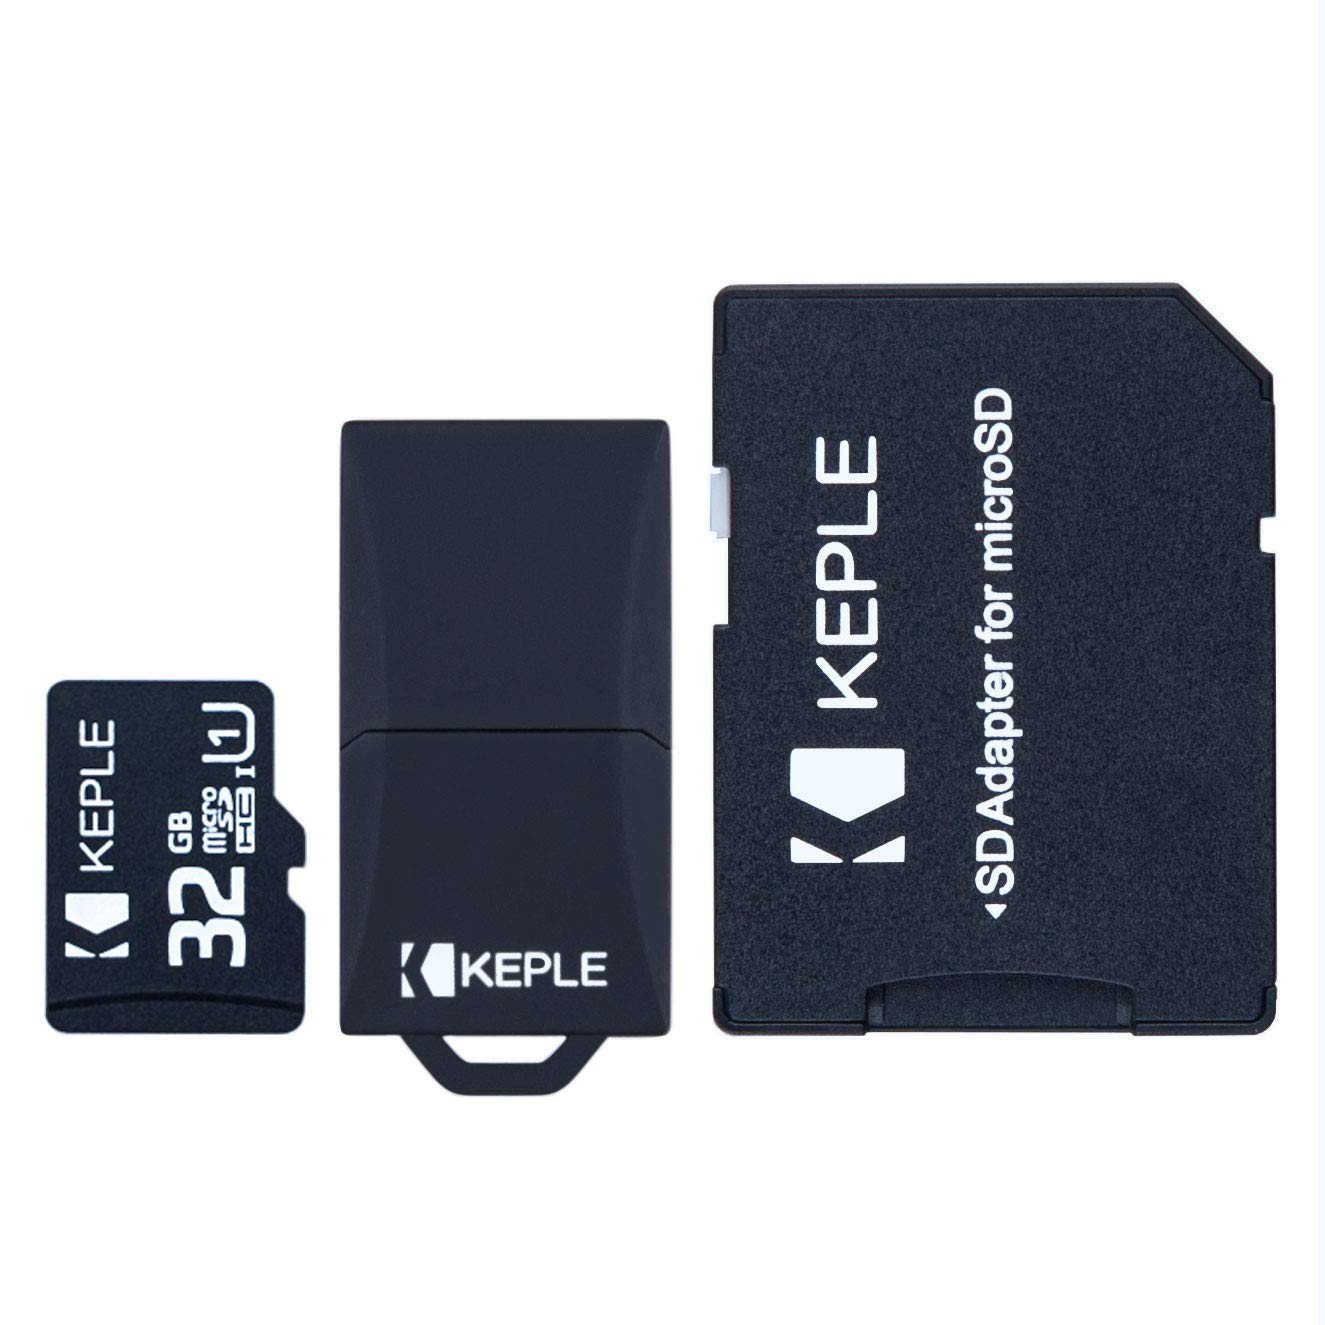 2 Pack Sony Cyber-Shot DSC-TF1 Digital Camera Memory Card 2 x 32GB microSDHC Memory Card with SD Adapter